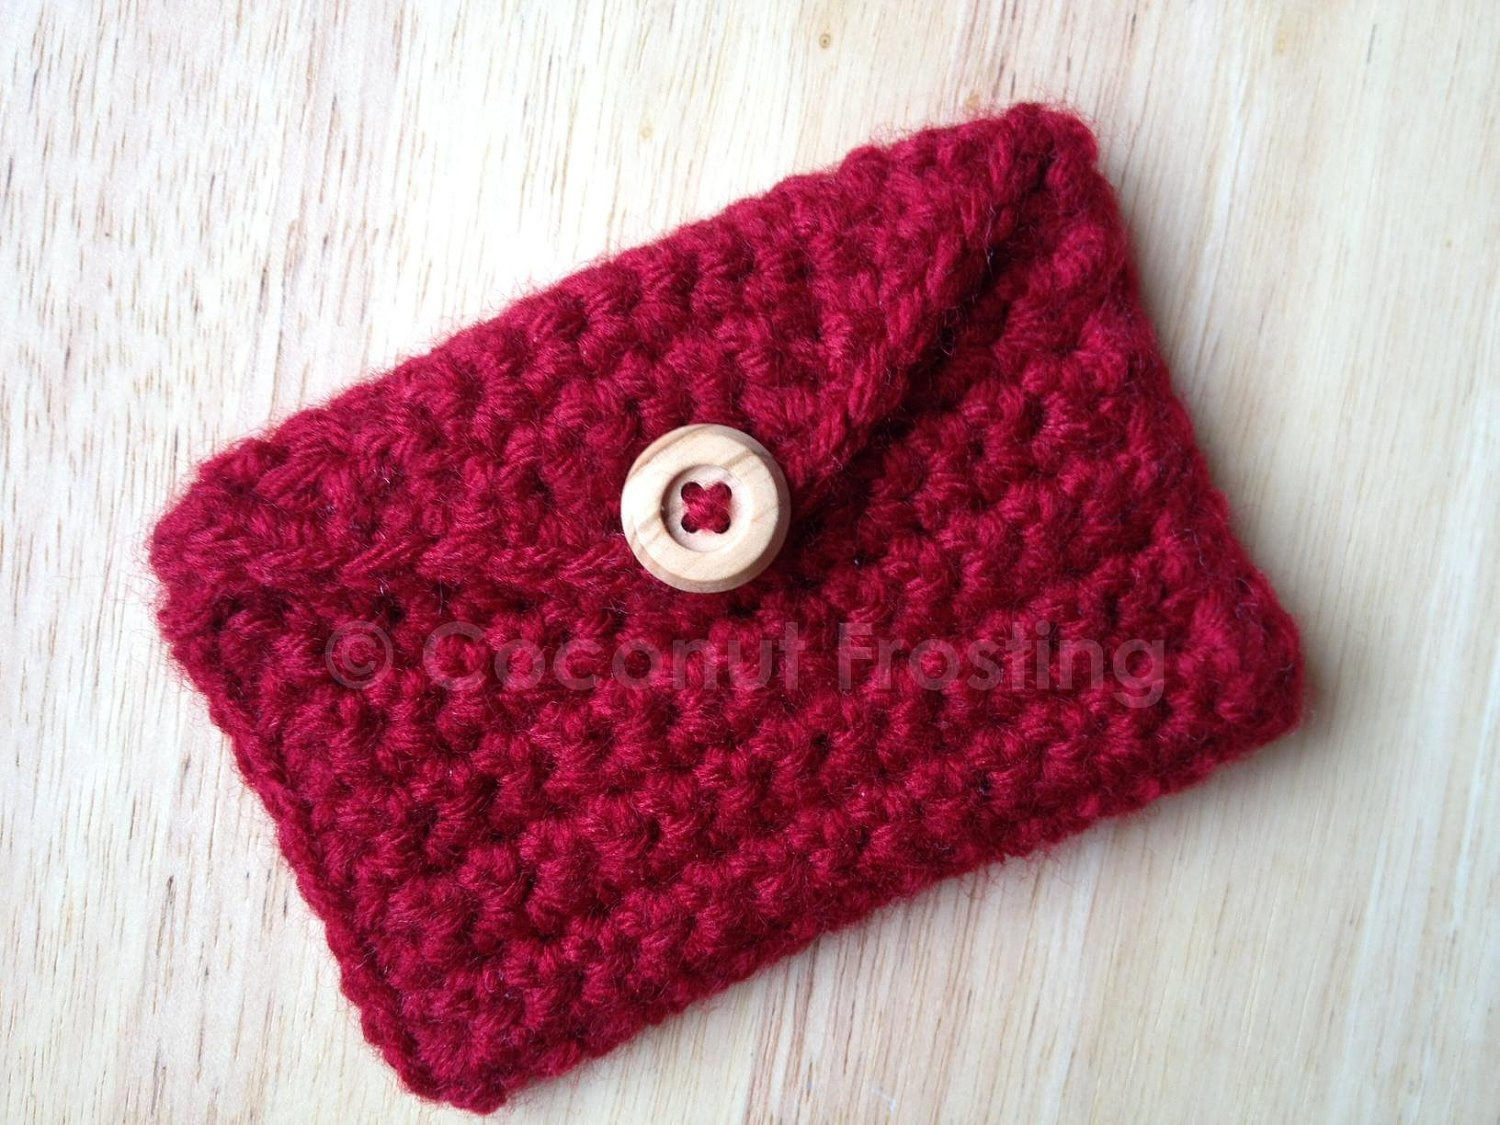 Crochet Business Name Ideas Unique Crochet Gift Business Credit Card Holder Customer Of Wonderful 48 Images Crochet Business Name Ideas